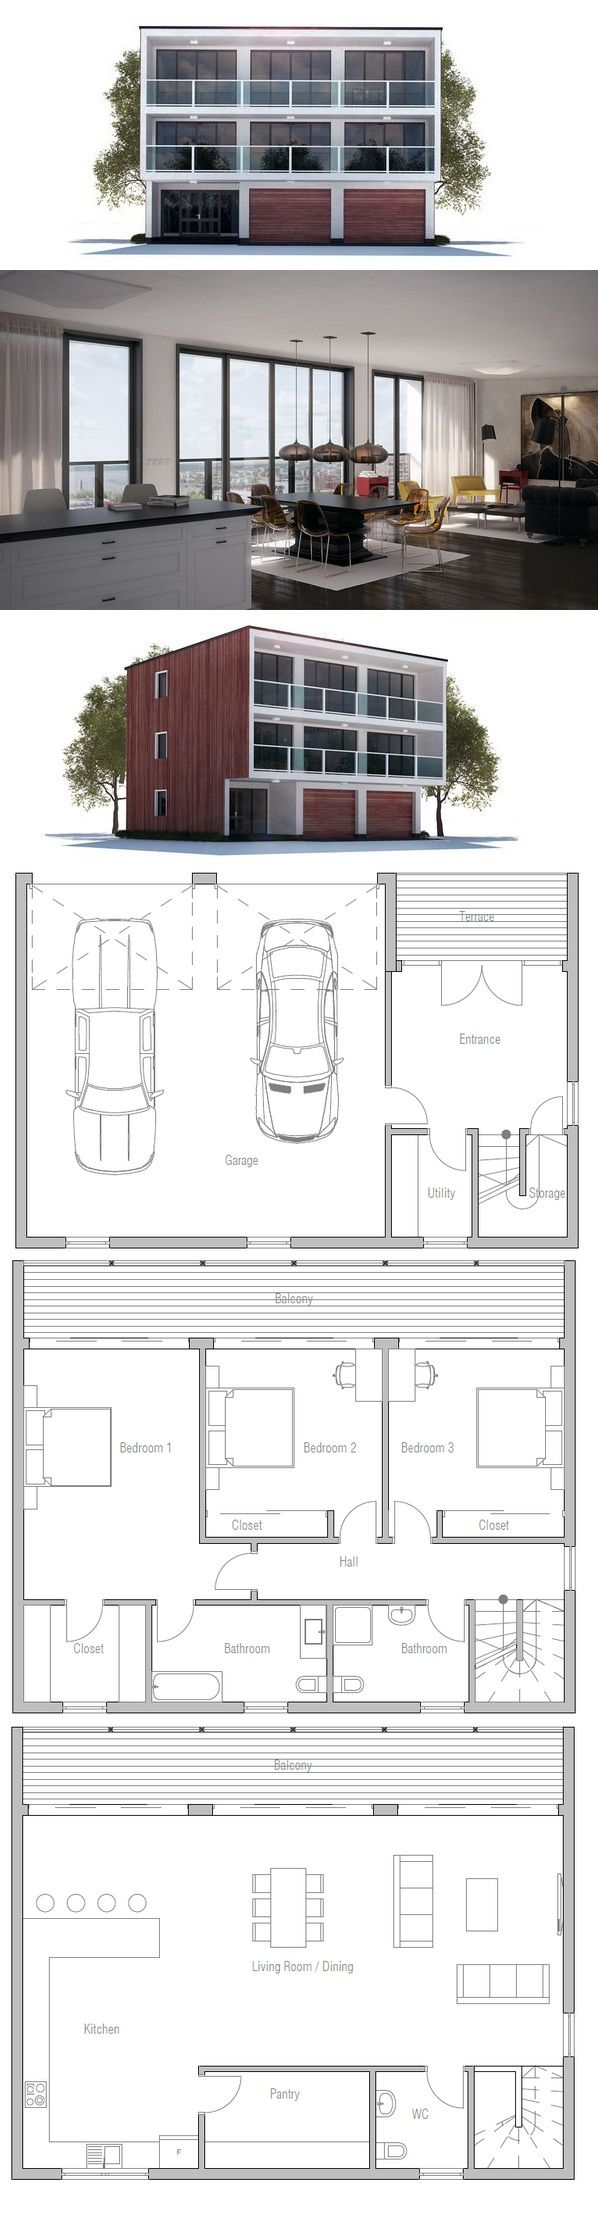 Upside down house living room on top perfect for the for Upside down beach house plans